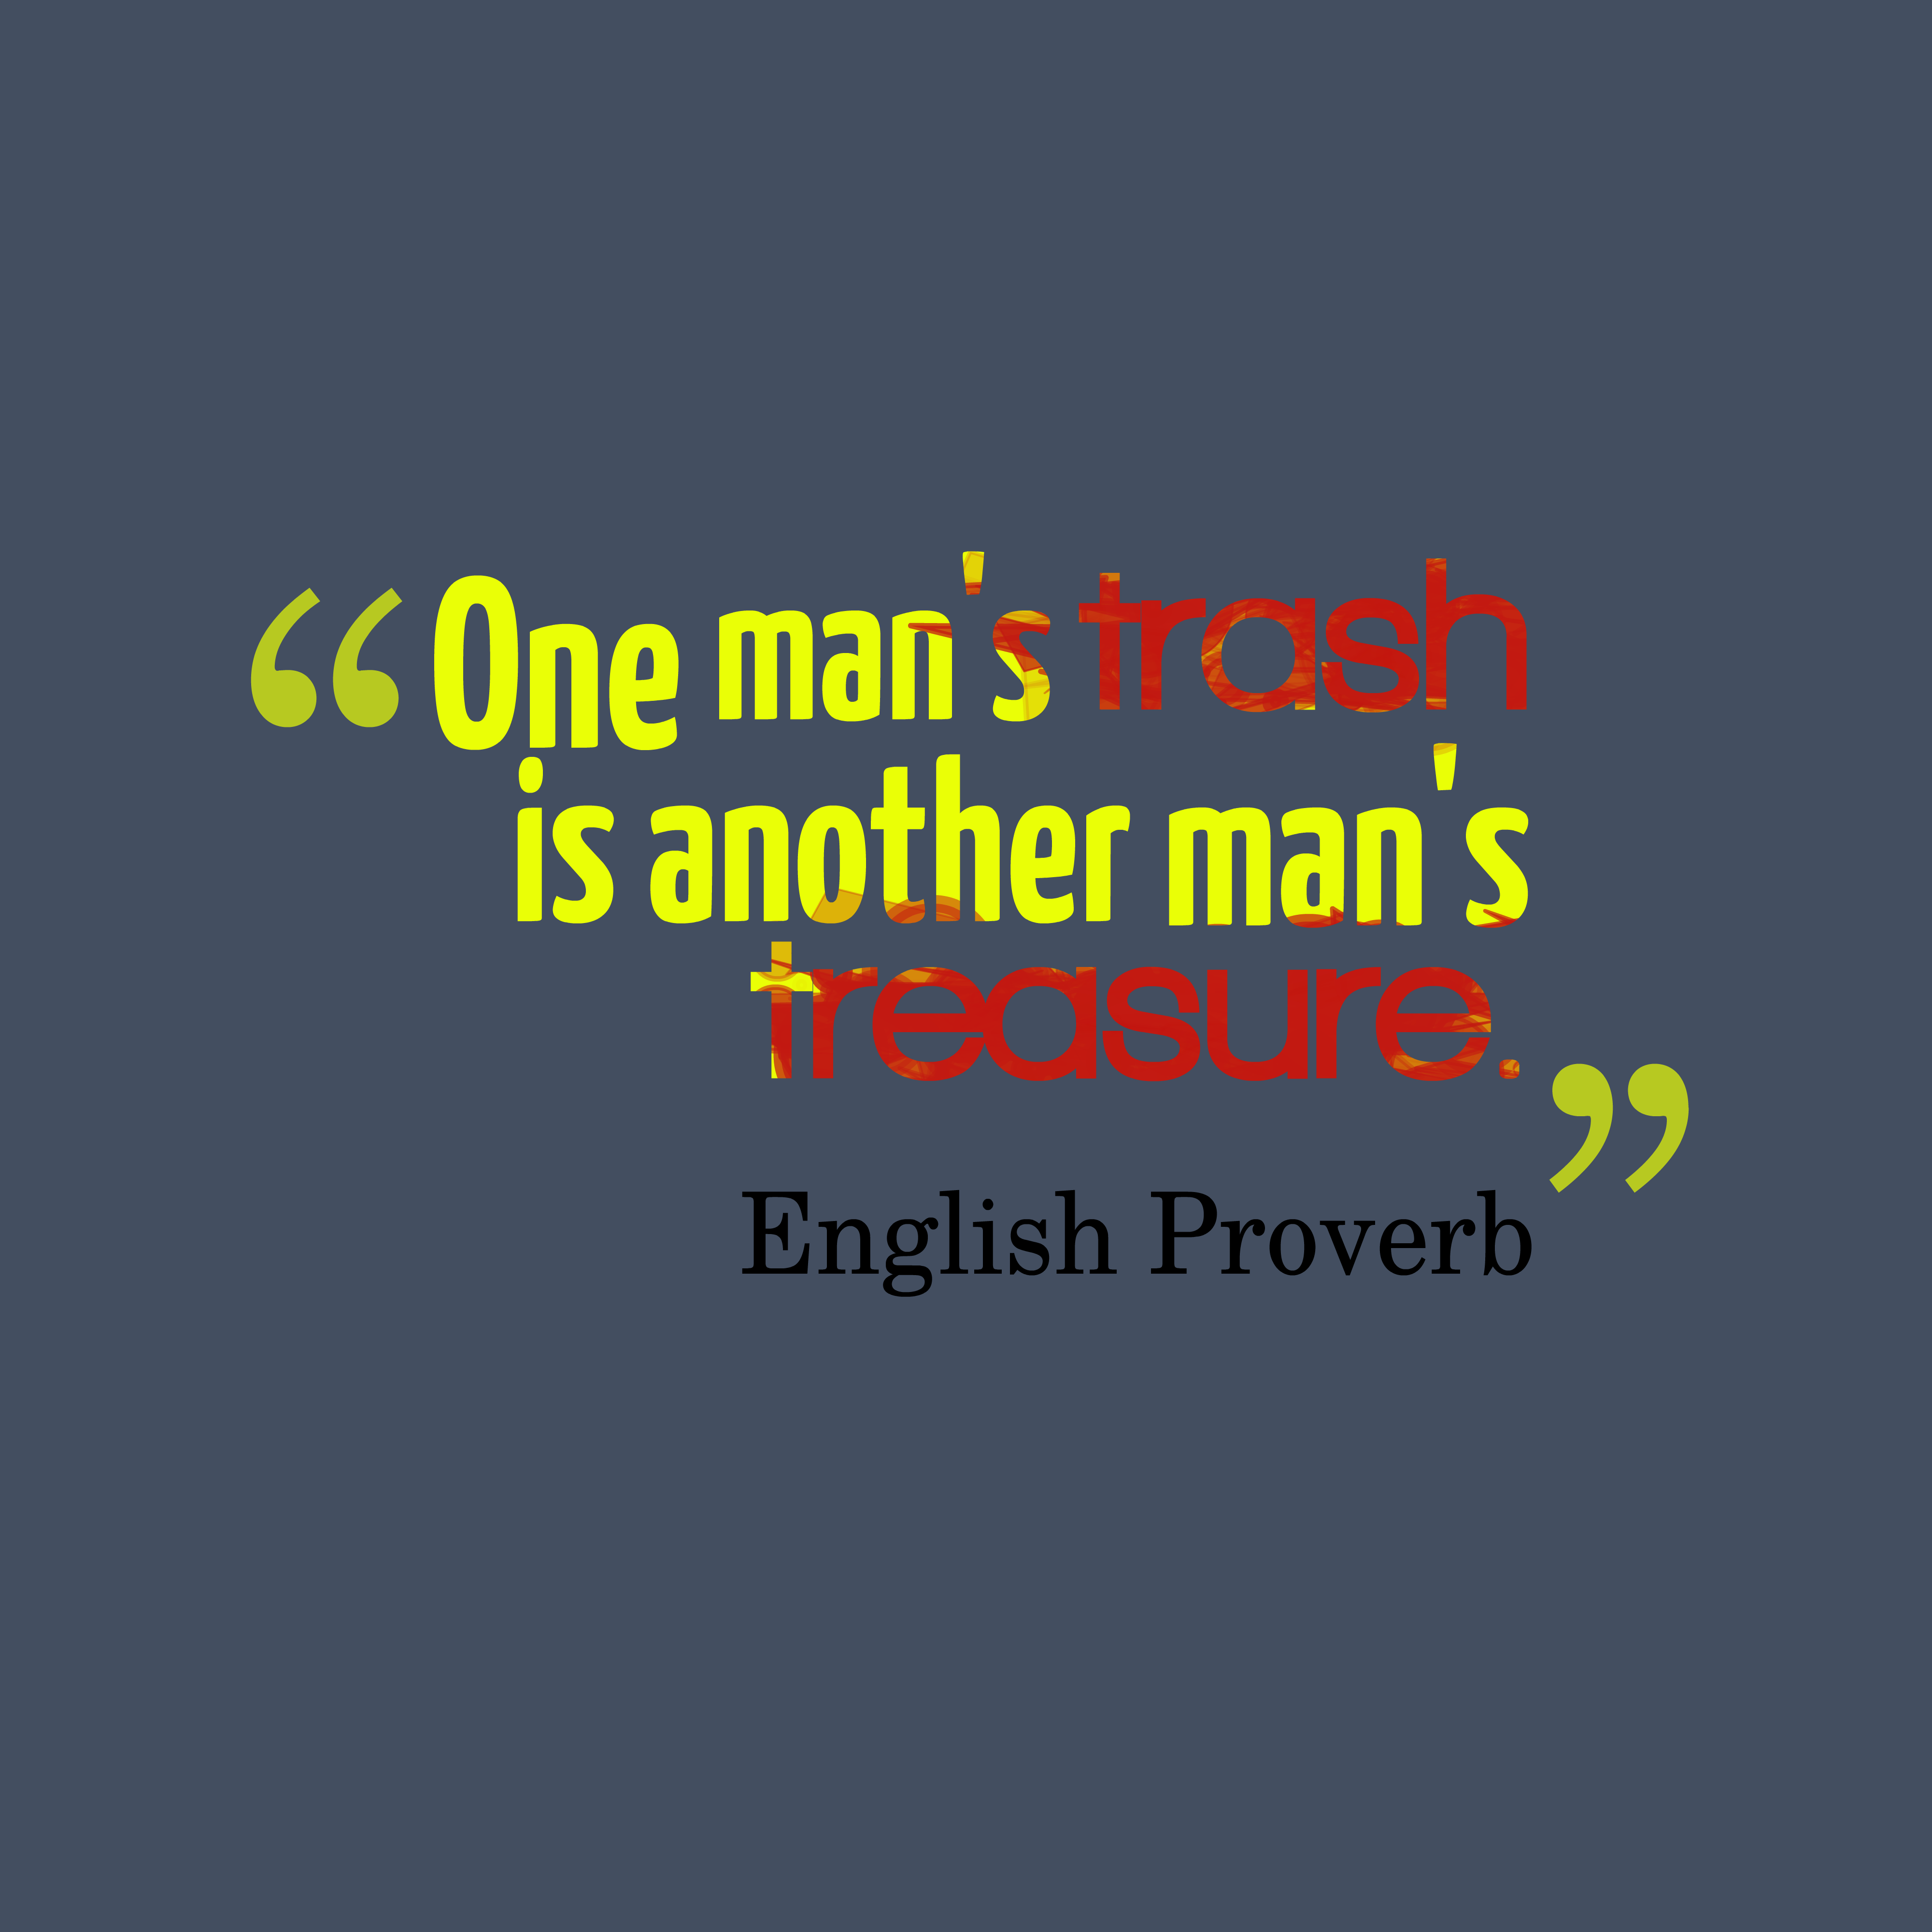 Quotes image of One man's trash is another man's treasure.